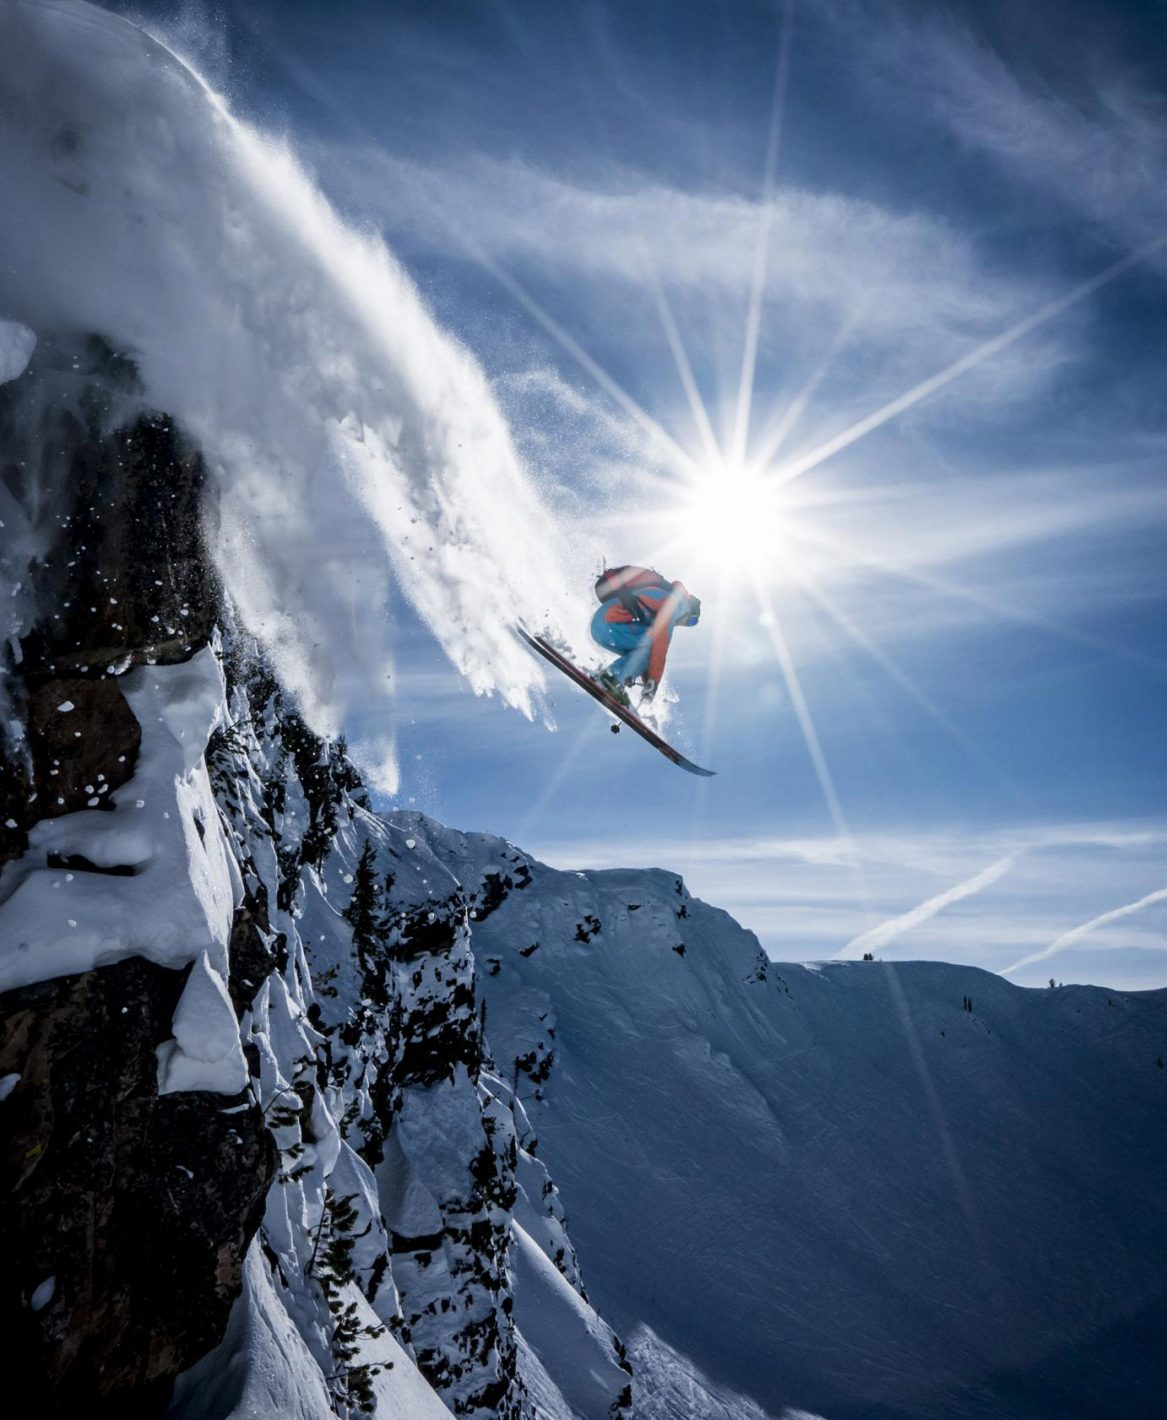 Warren Miller's New Film Here, There & Everywhere